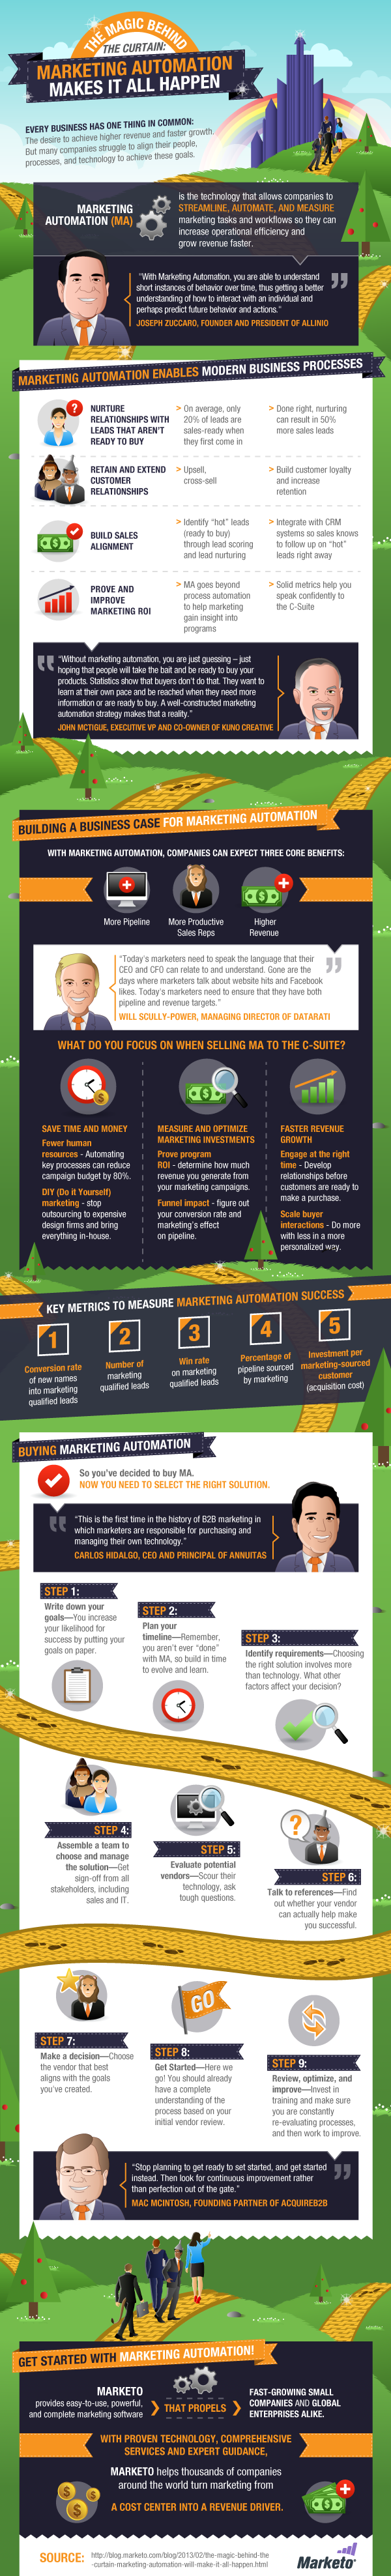 The Magic Behind the Curtain: Marketing Automation Makes it All Happen [Infographic]